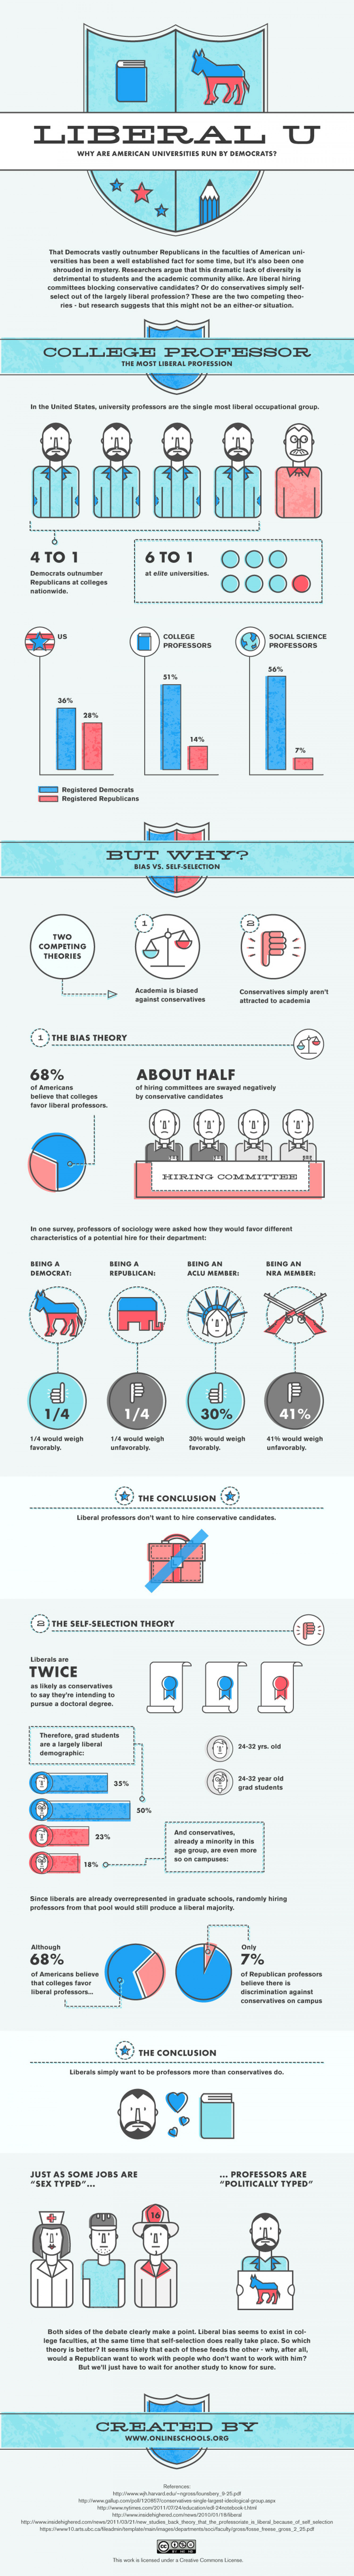 Liberal U - Why Are American Universities Run by Democrats? Infographic